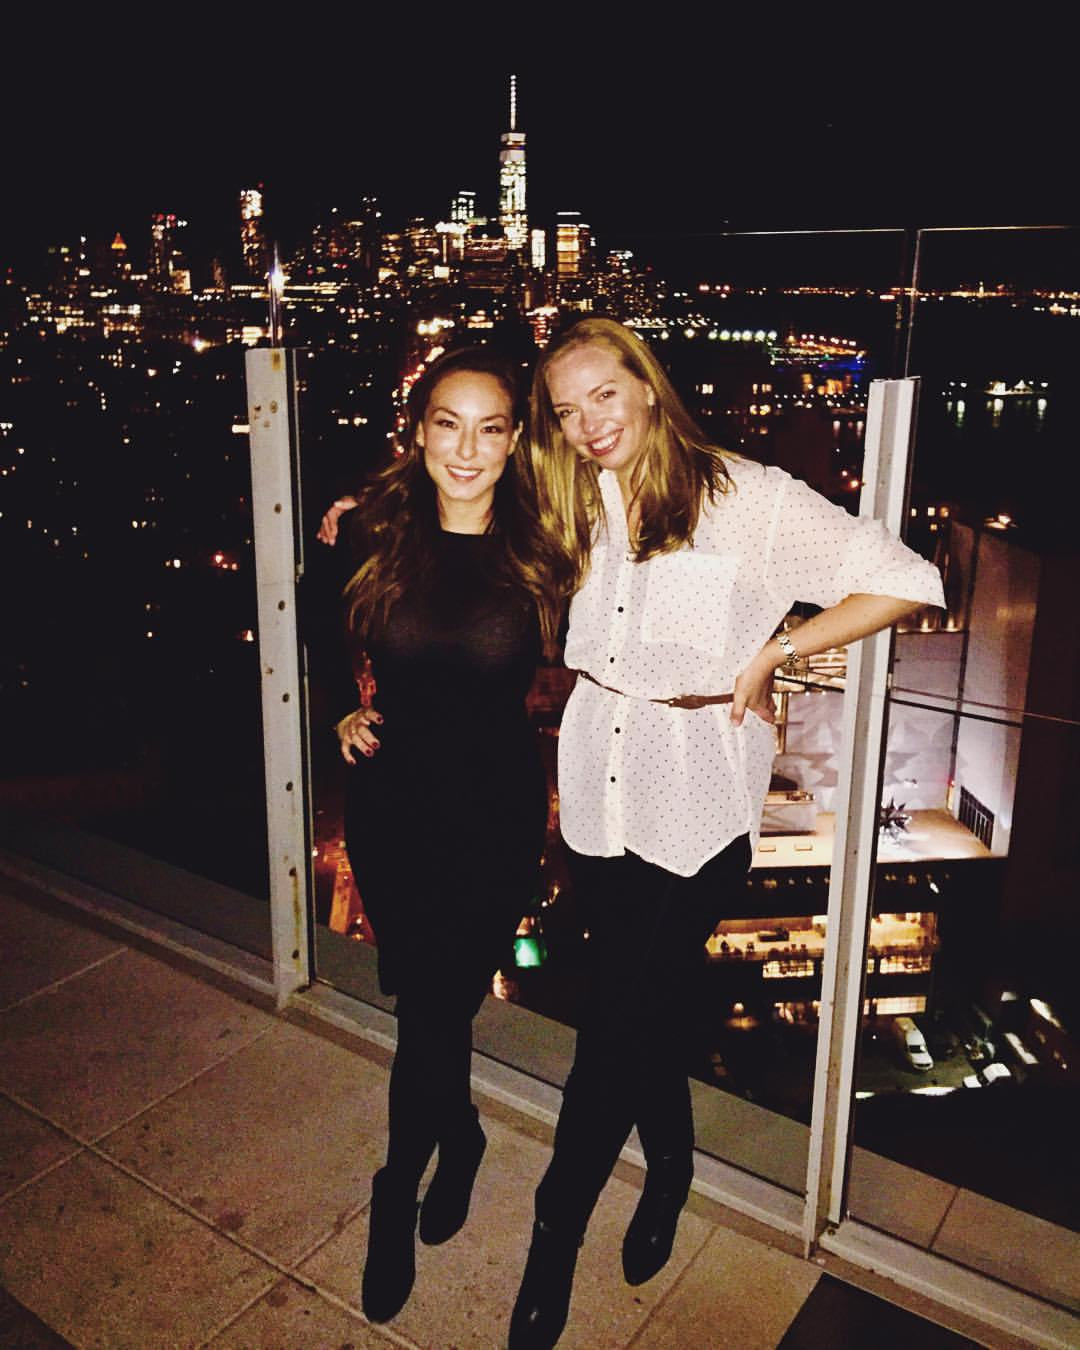 We're always ending u on rooftops 🌃💫✨ (at Le Bain at The Standard, High Line)